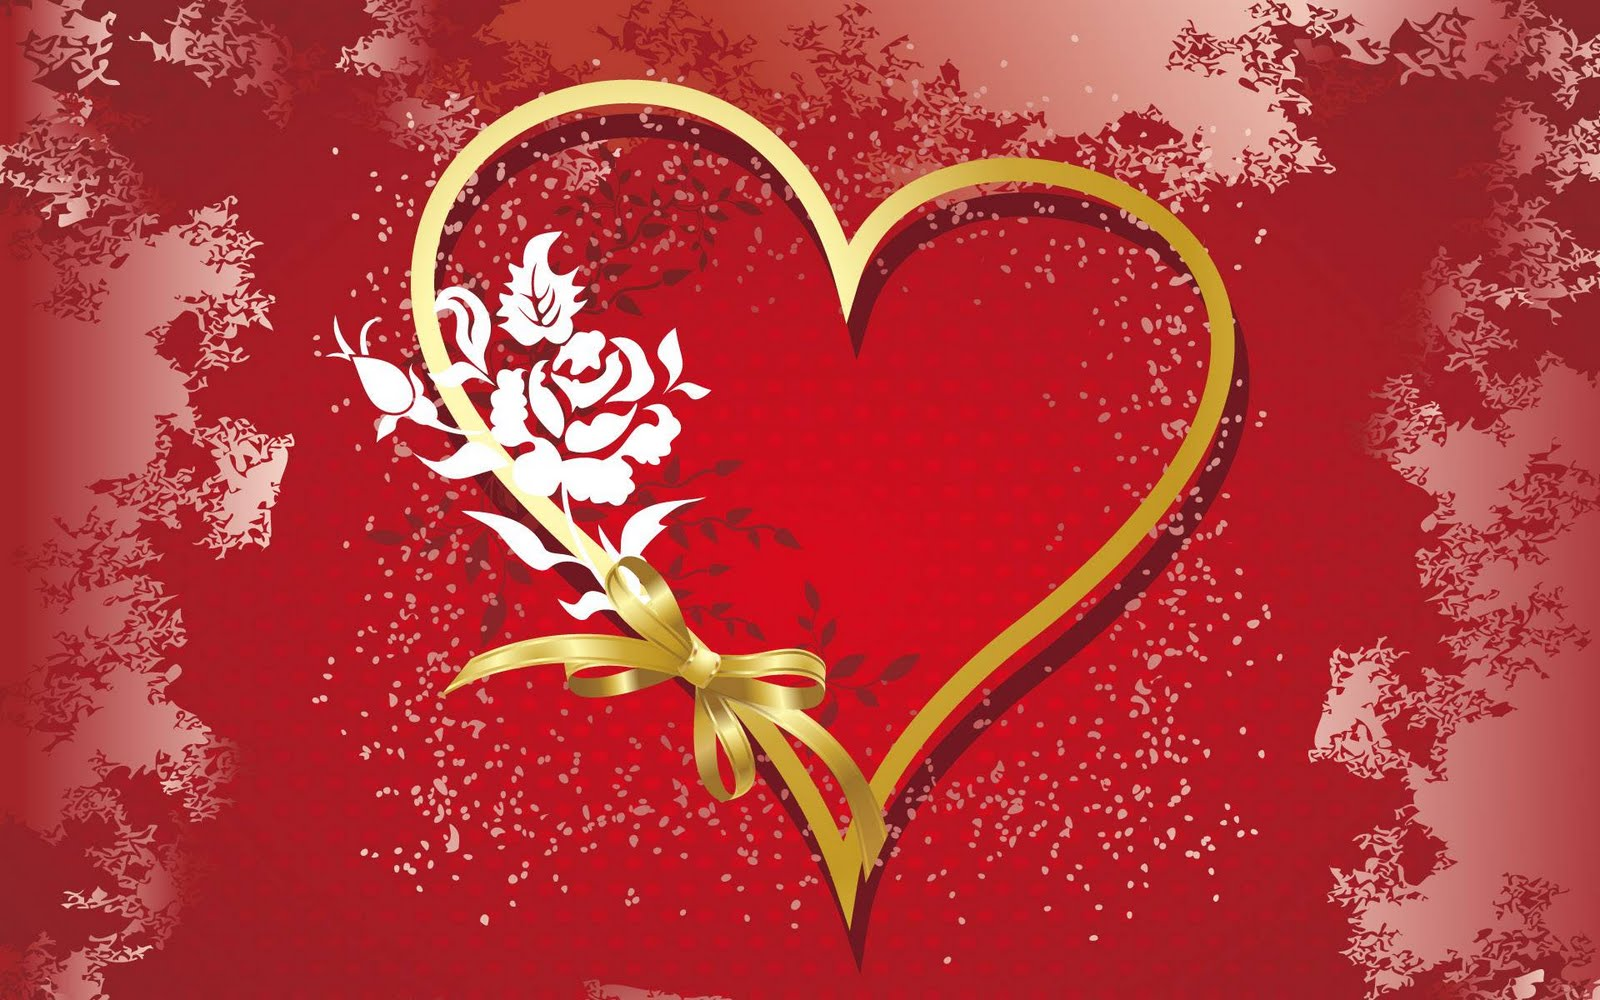 valentines day greeting cards Pictures and Photos | LOVE